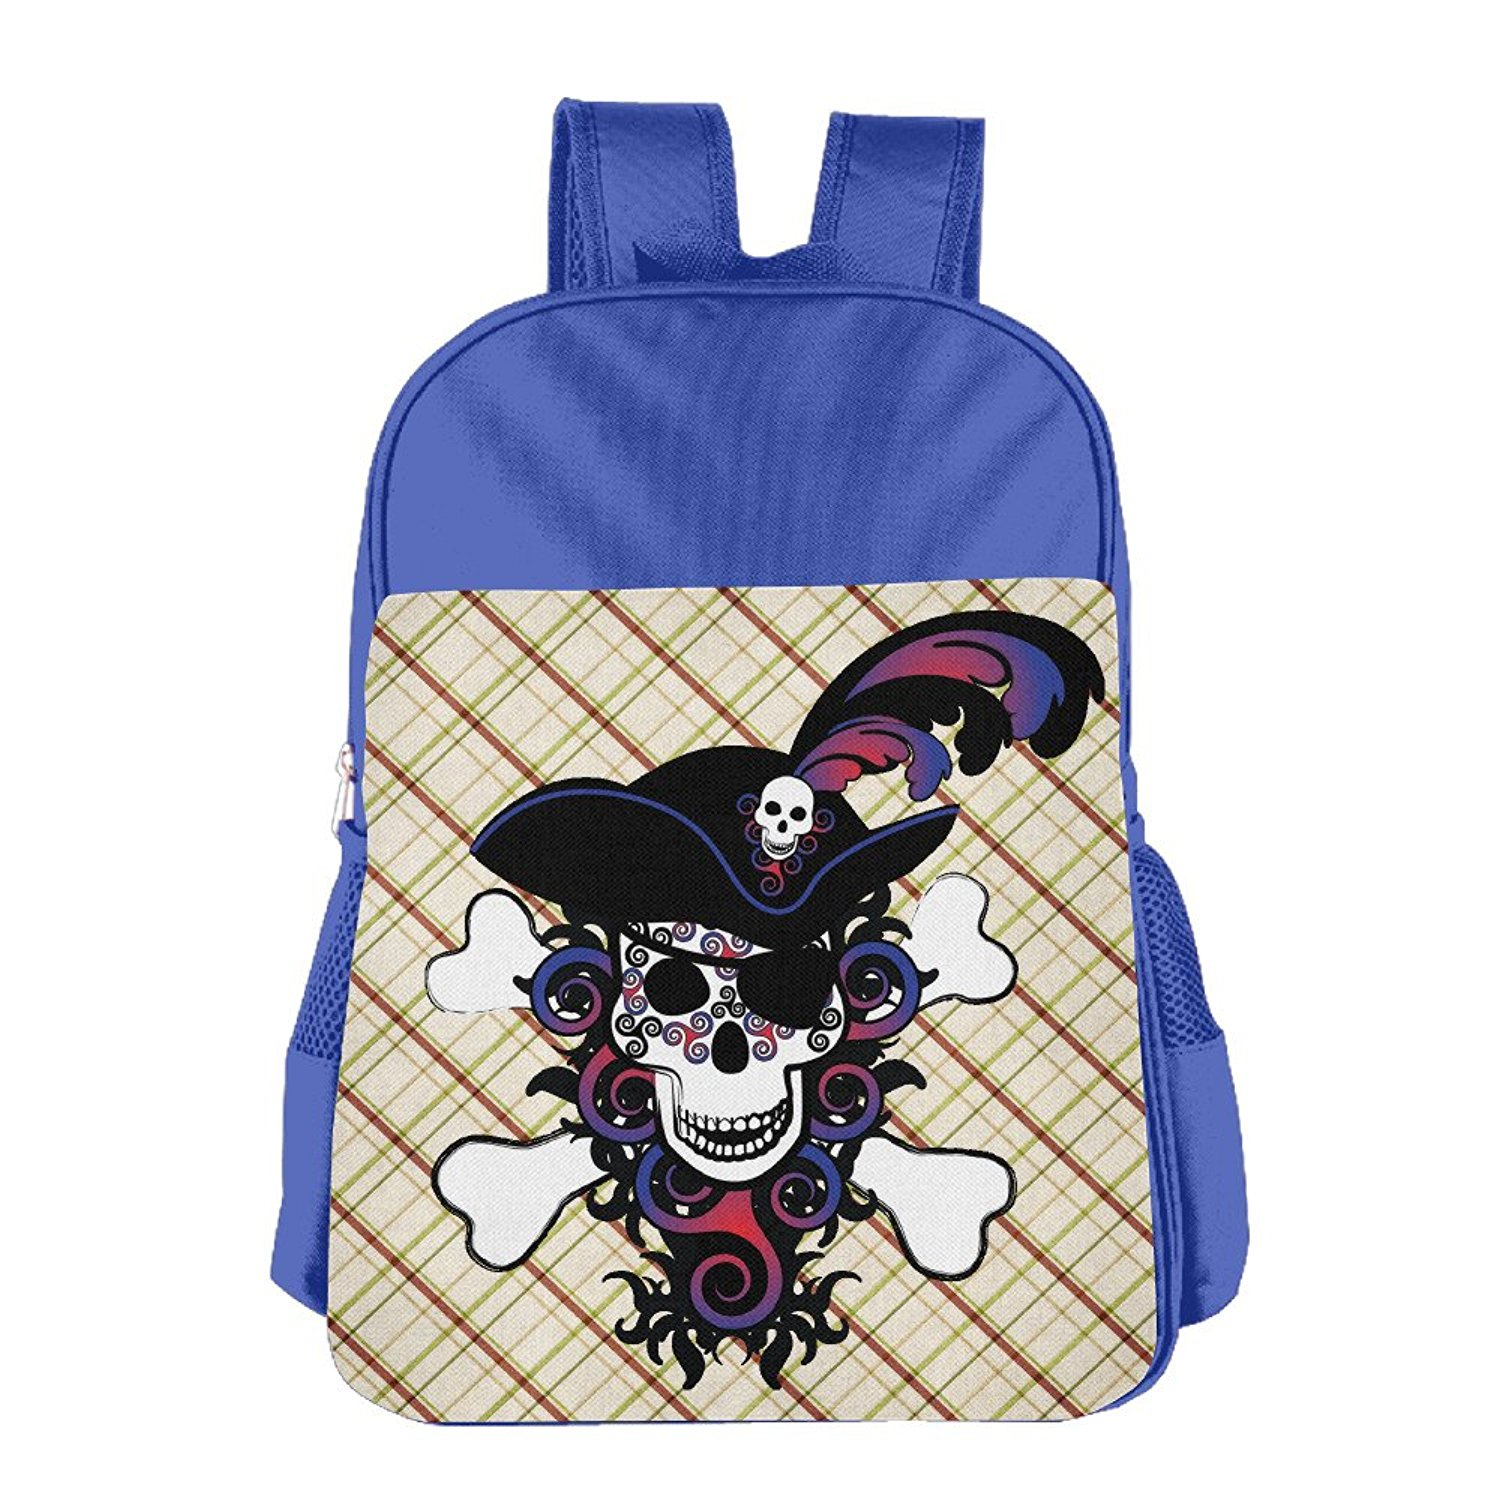 498ad228c70e Get Quotations · Celtic Spiral Pirate In Blues And Reds Kids School  Backpack Bag